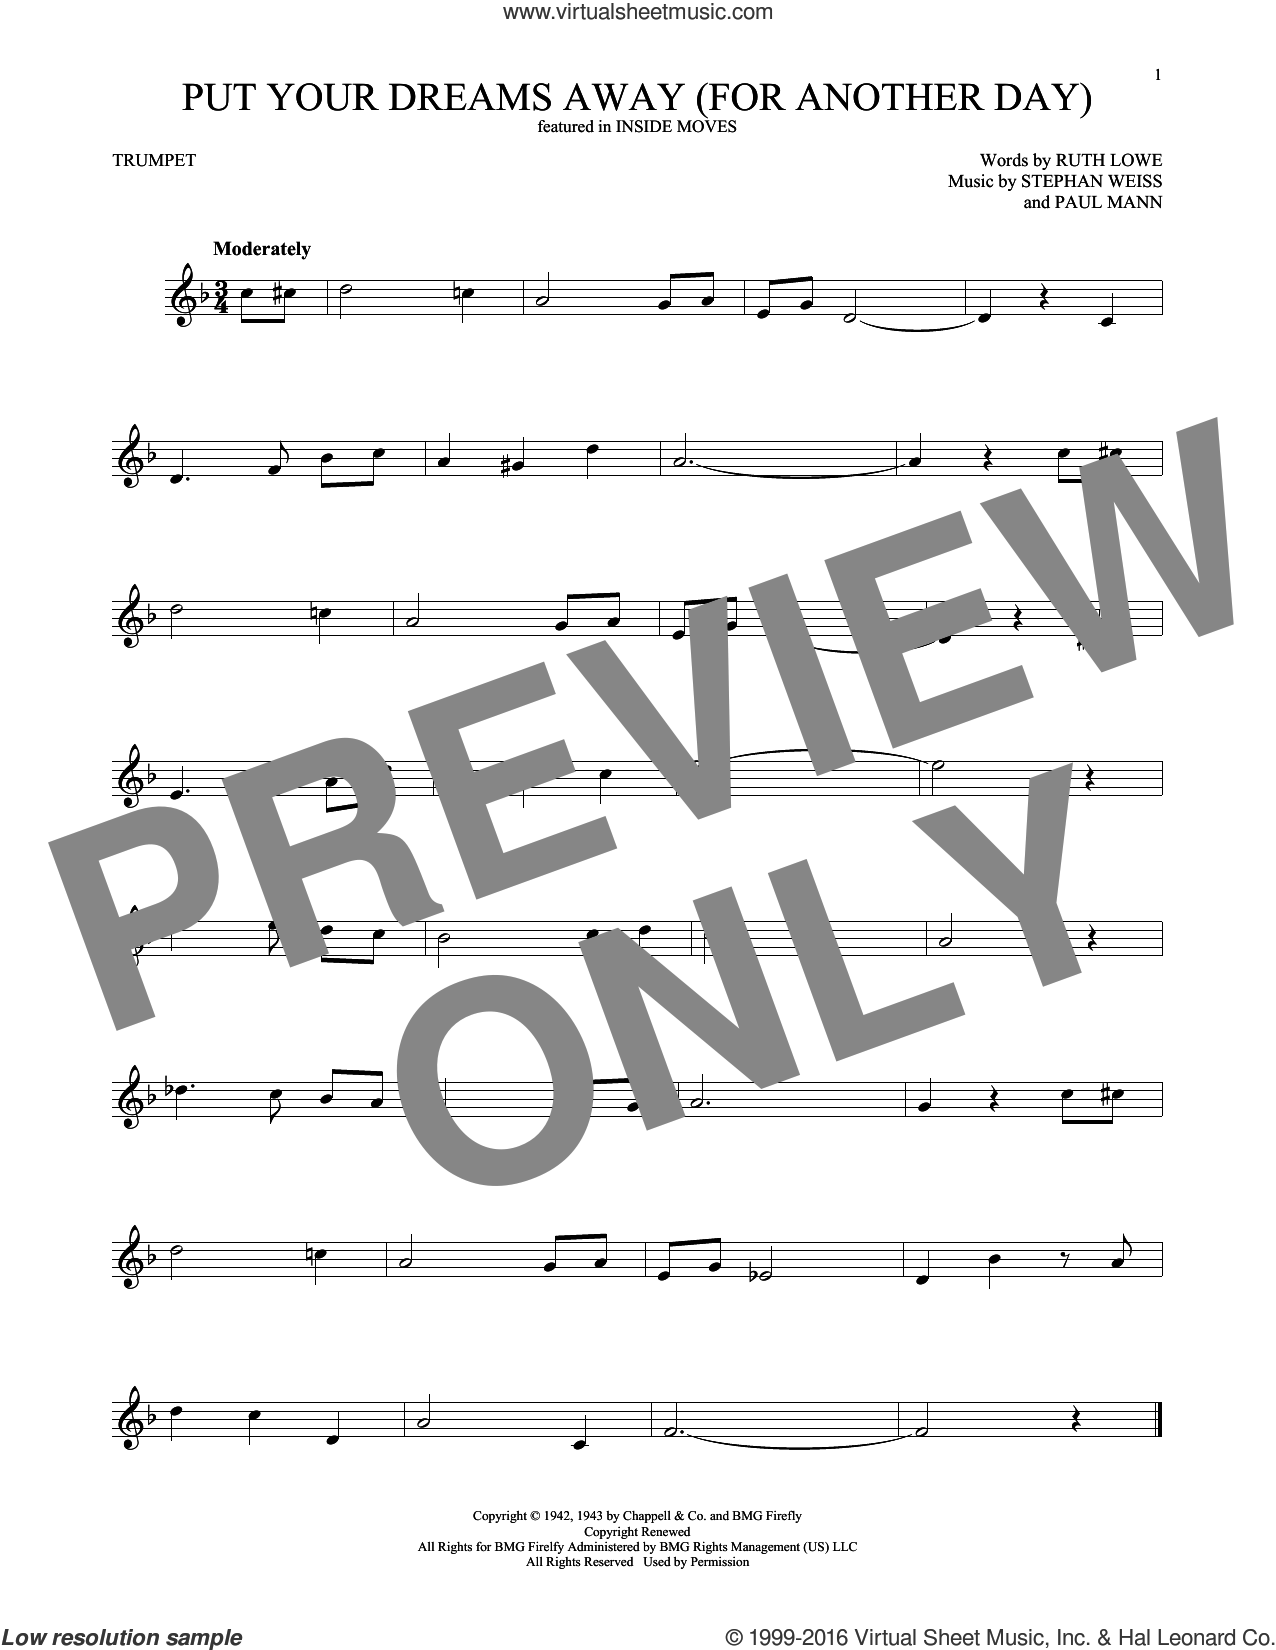 Put Your Dreams Away (For Another Day) sheet music for trumpet solo by Stephen Weiss, Frank Sinatra and Ruth Lowe. Score Image Preview.